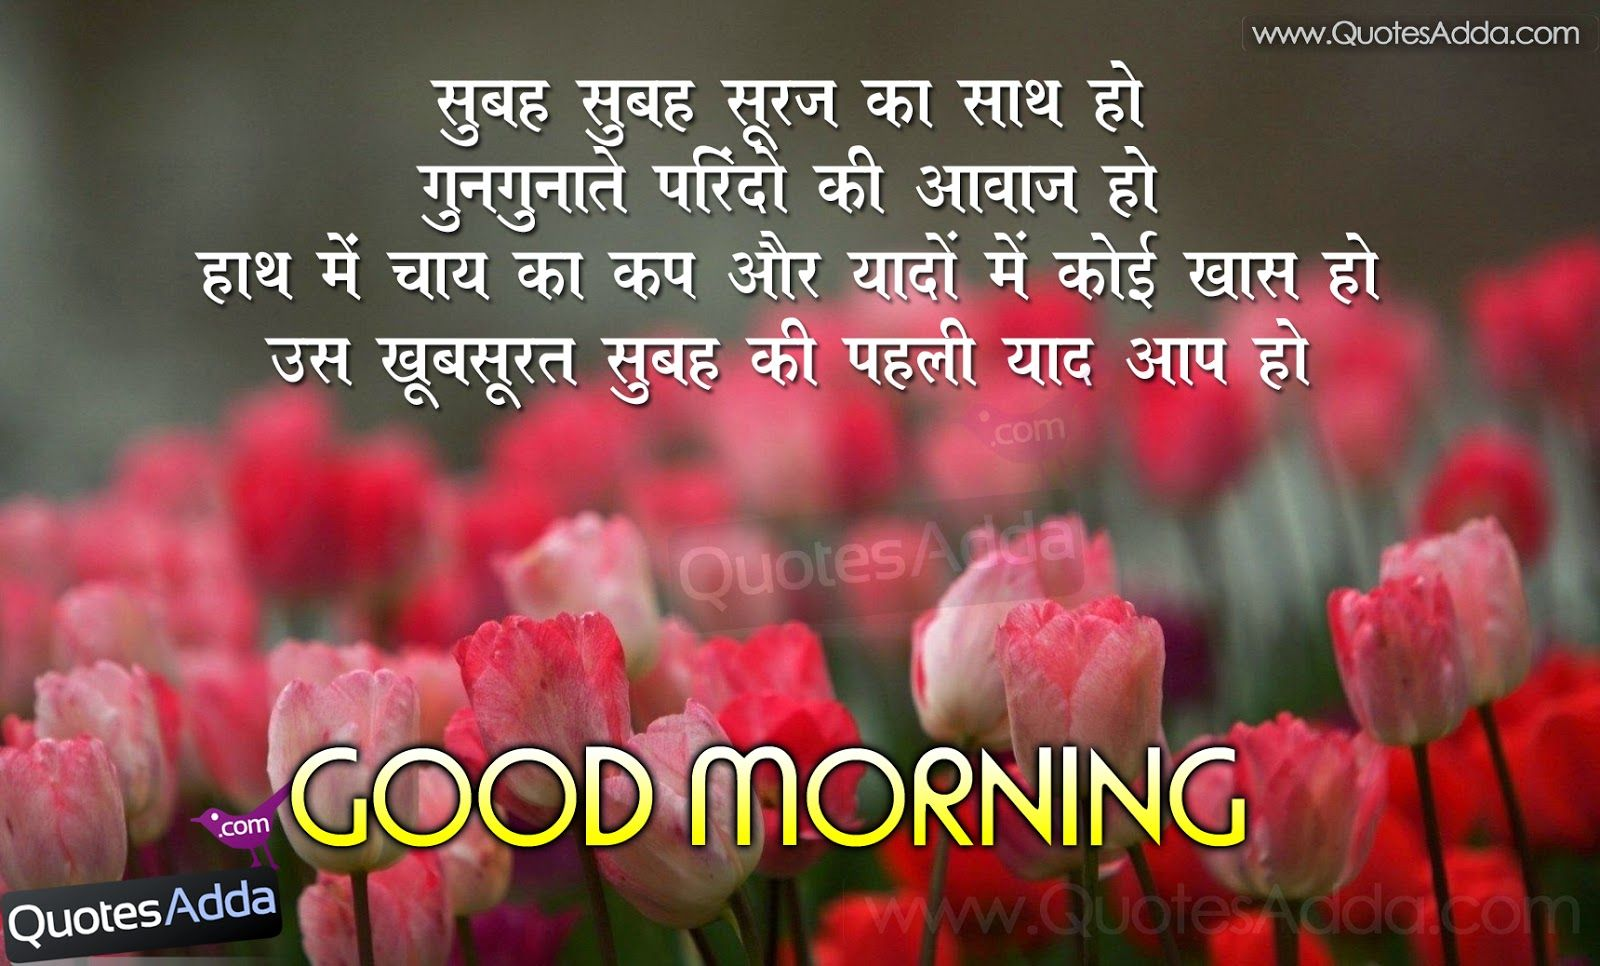 Good Morning Best Images With Quotes In Hindi